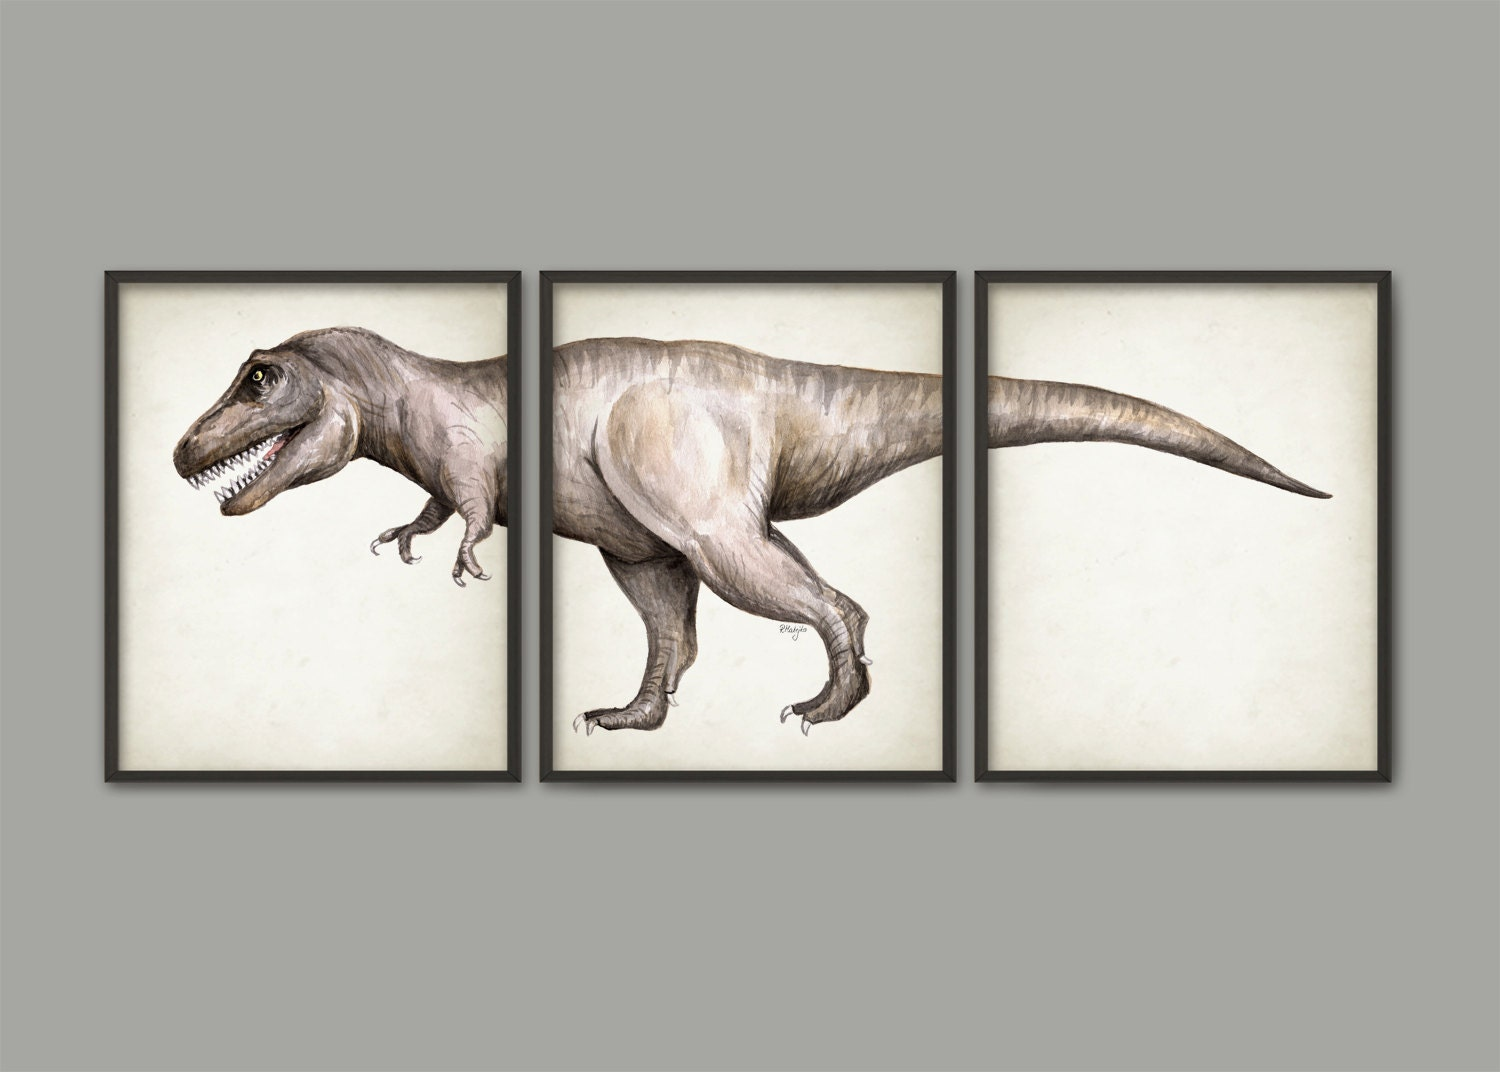 Tyrannosaurus rex dinosaur watercolor art poster set of 3 for T rex bedroom decor